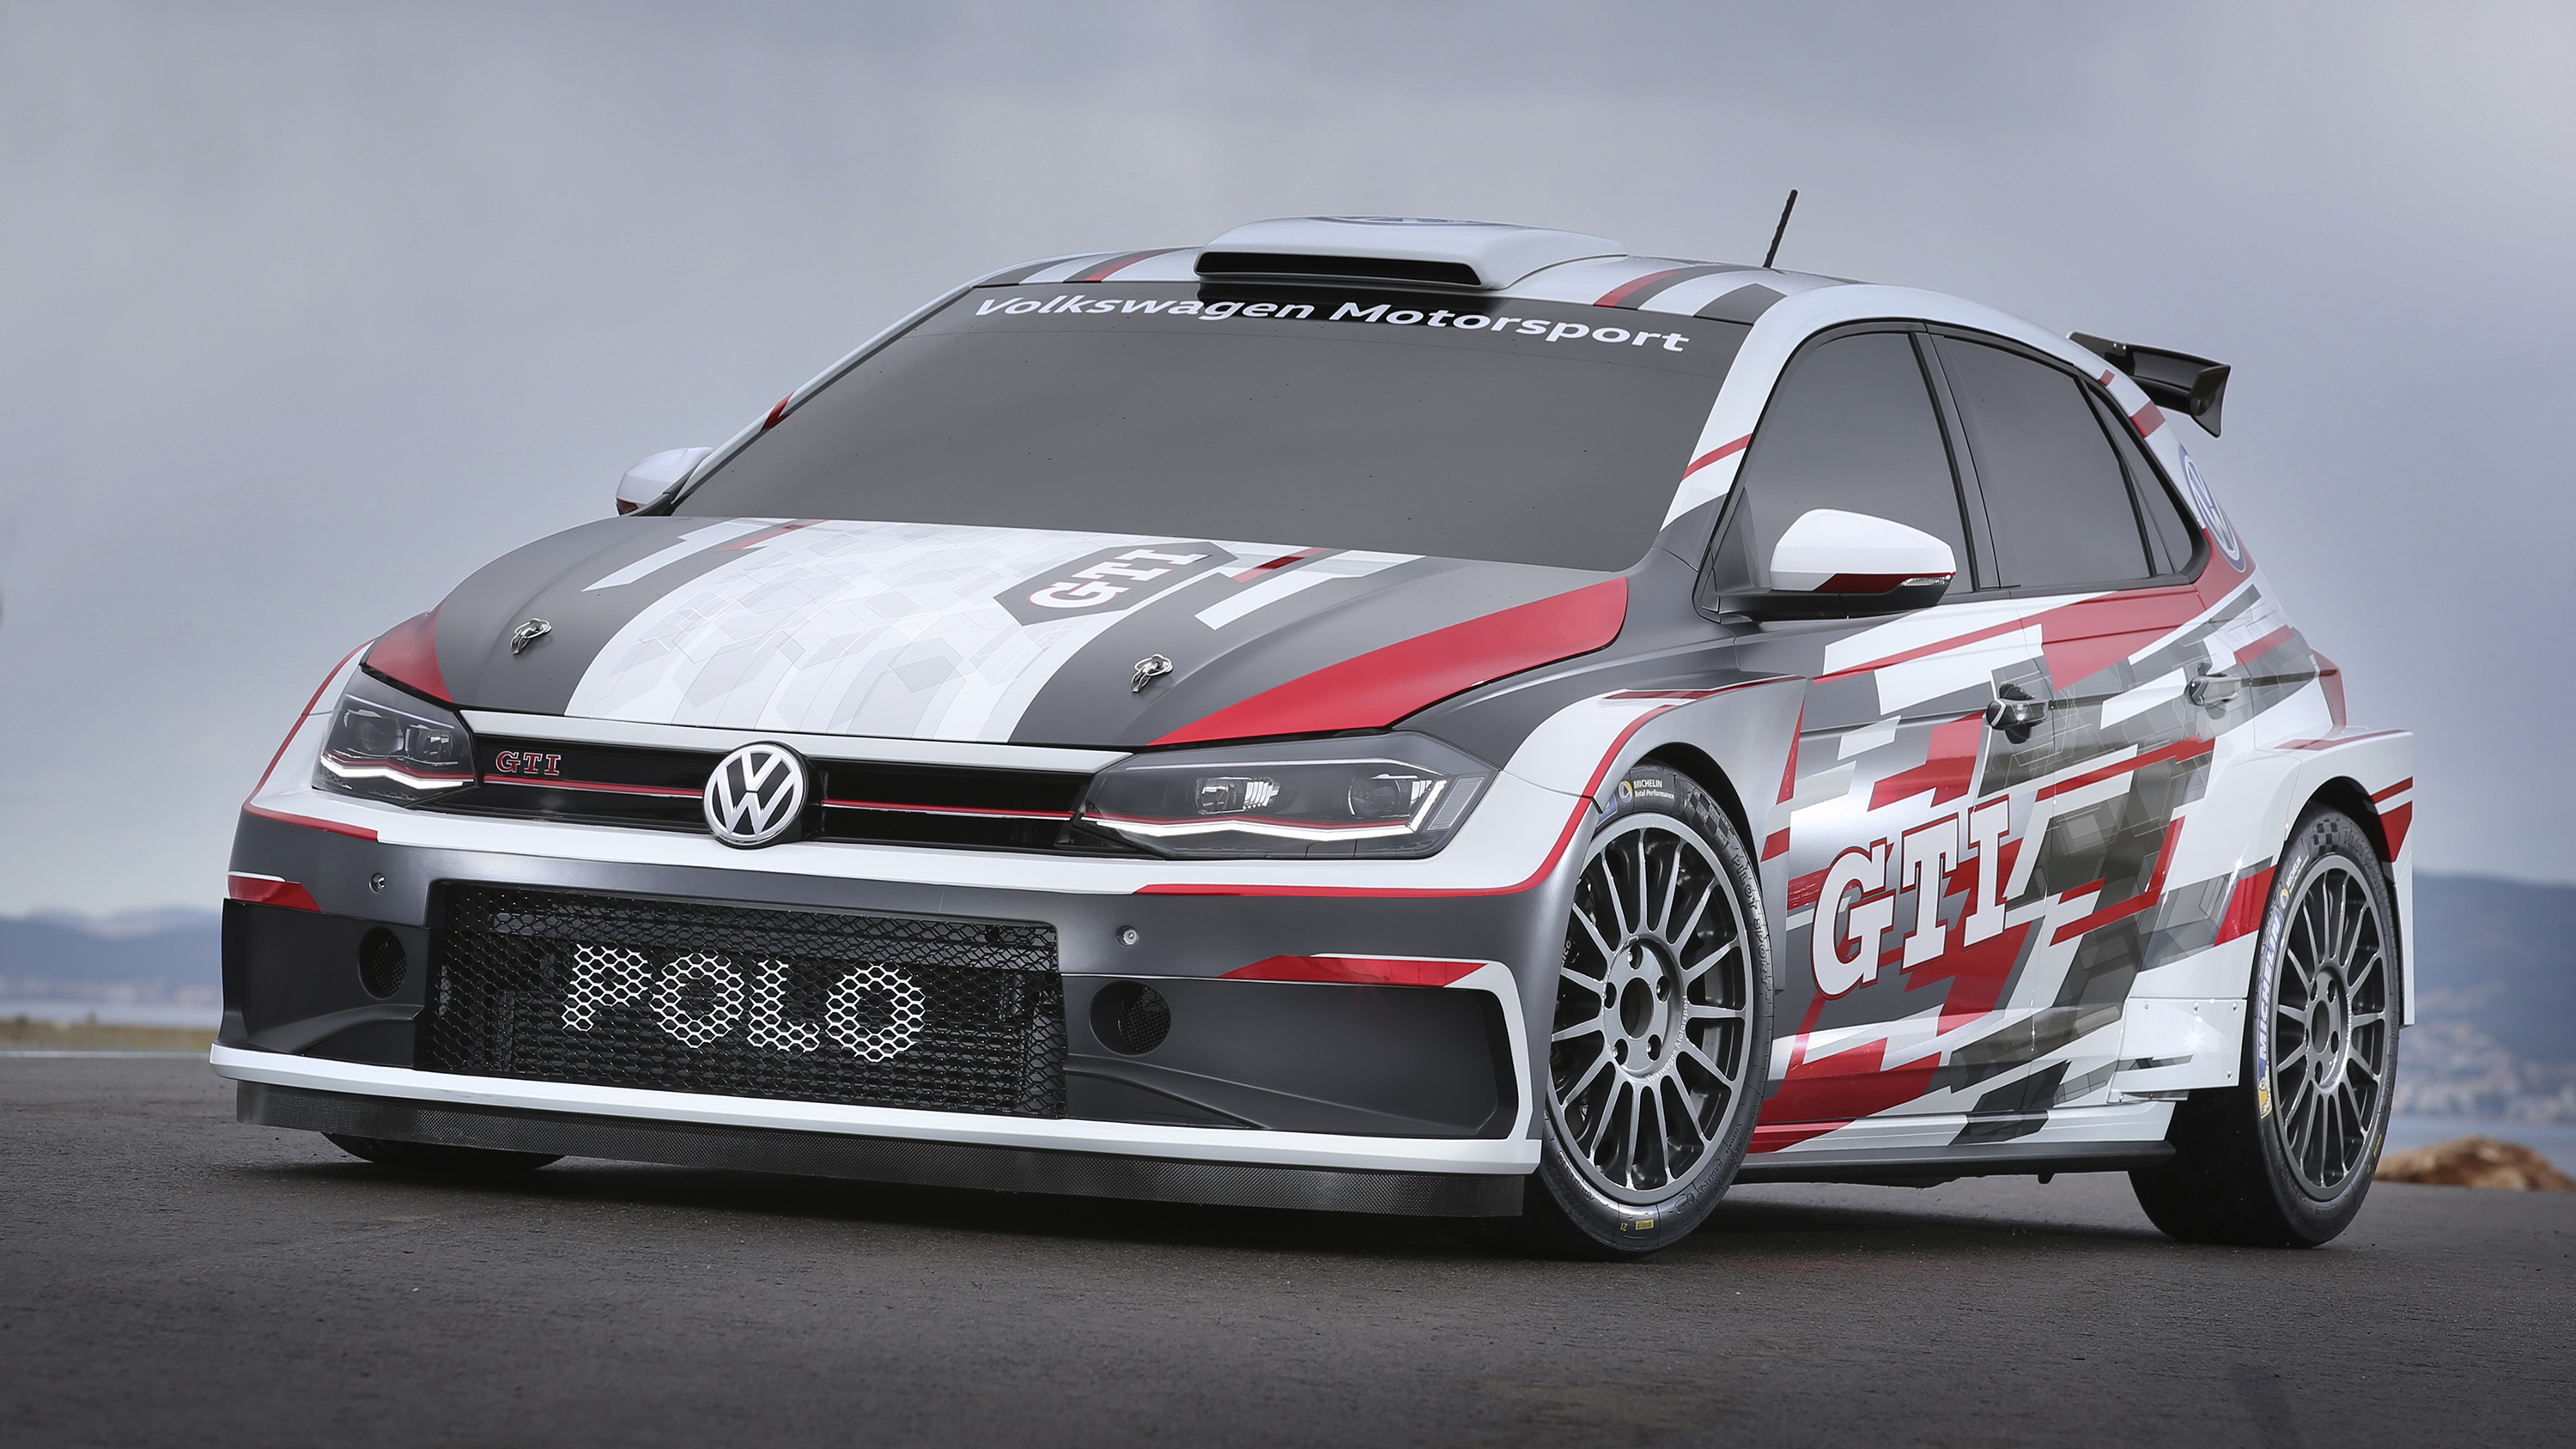 Volkswagen\'s new Polo GTI rally car is here | Top Gear